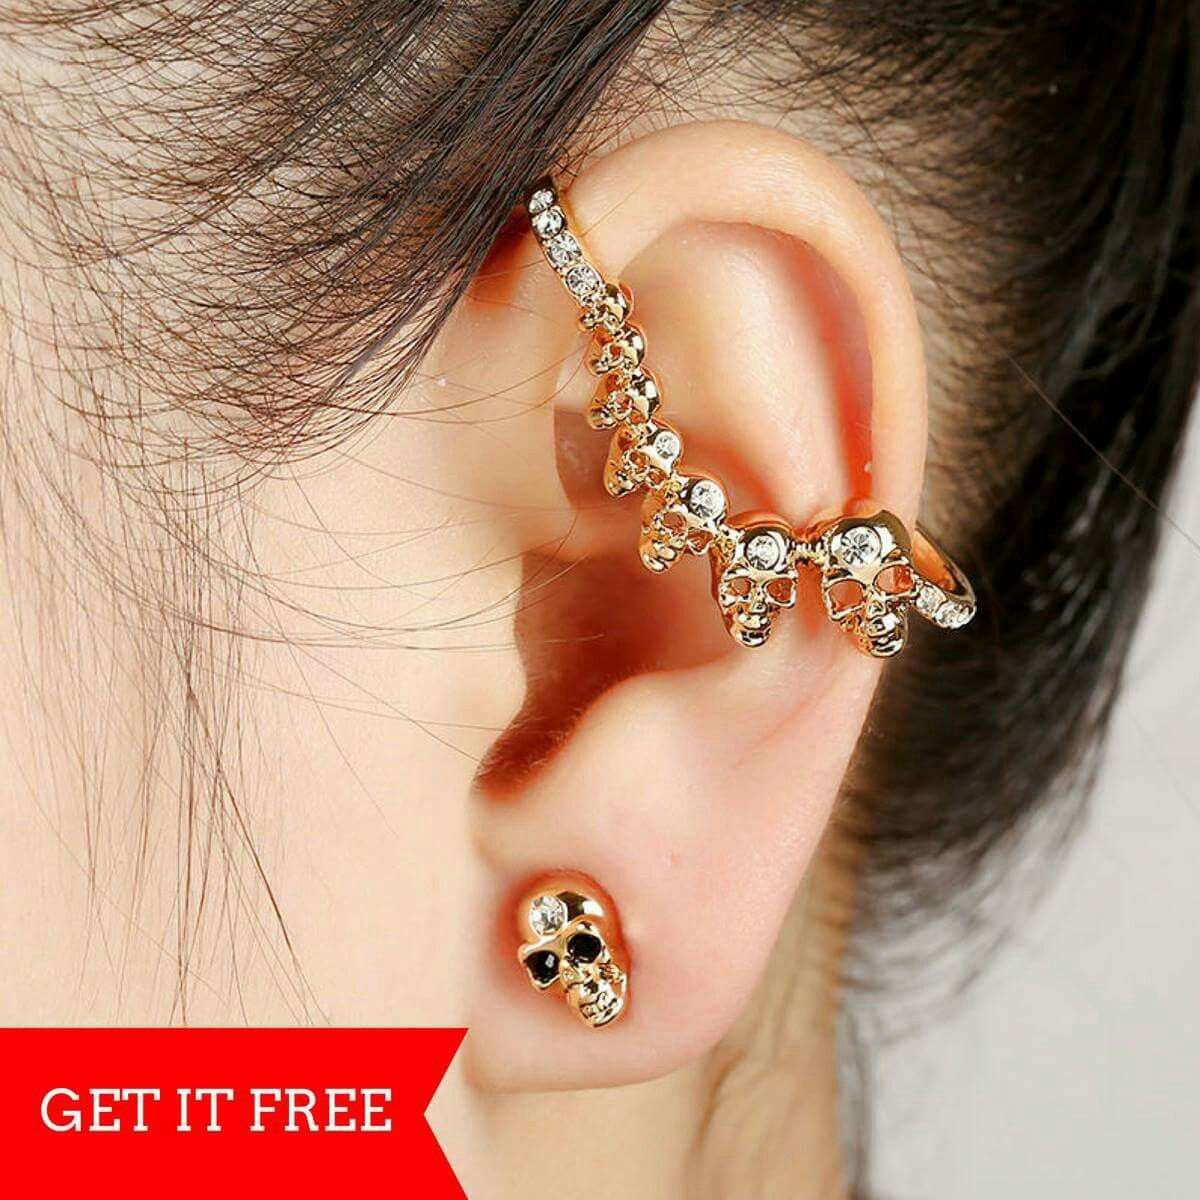 Want this crystal cuff skull earrings free just pay shipping get price tracker and history of 2017 new crystal cuff earrings double side earrings for women ear skull hiphop steampunk cool clip earrings baditri Choice Image